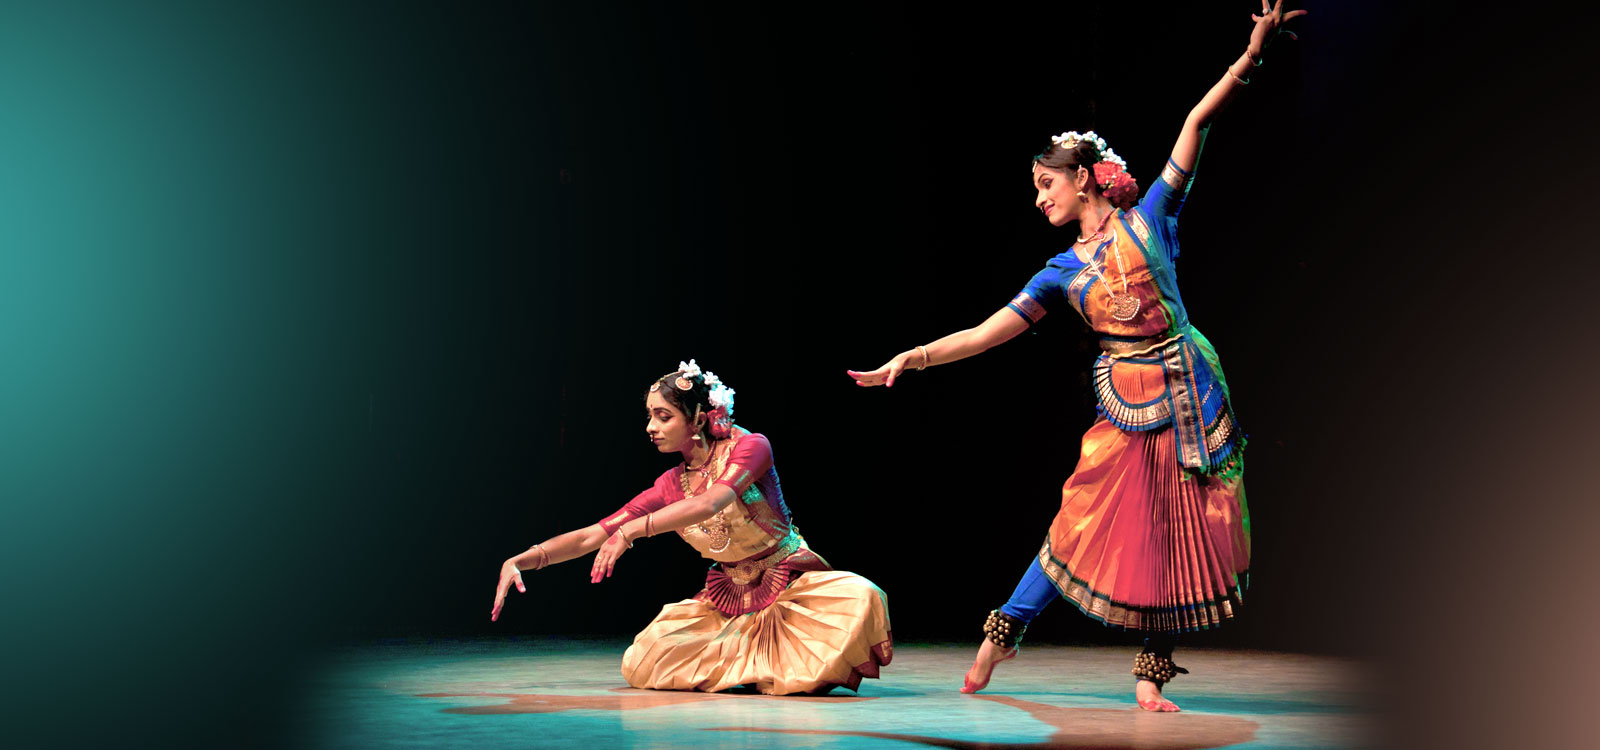 Dance pictures of india Royalty Free Bharatanatyam Dancing Pictures, Images and Stock